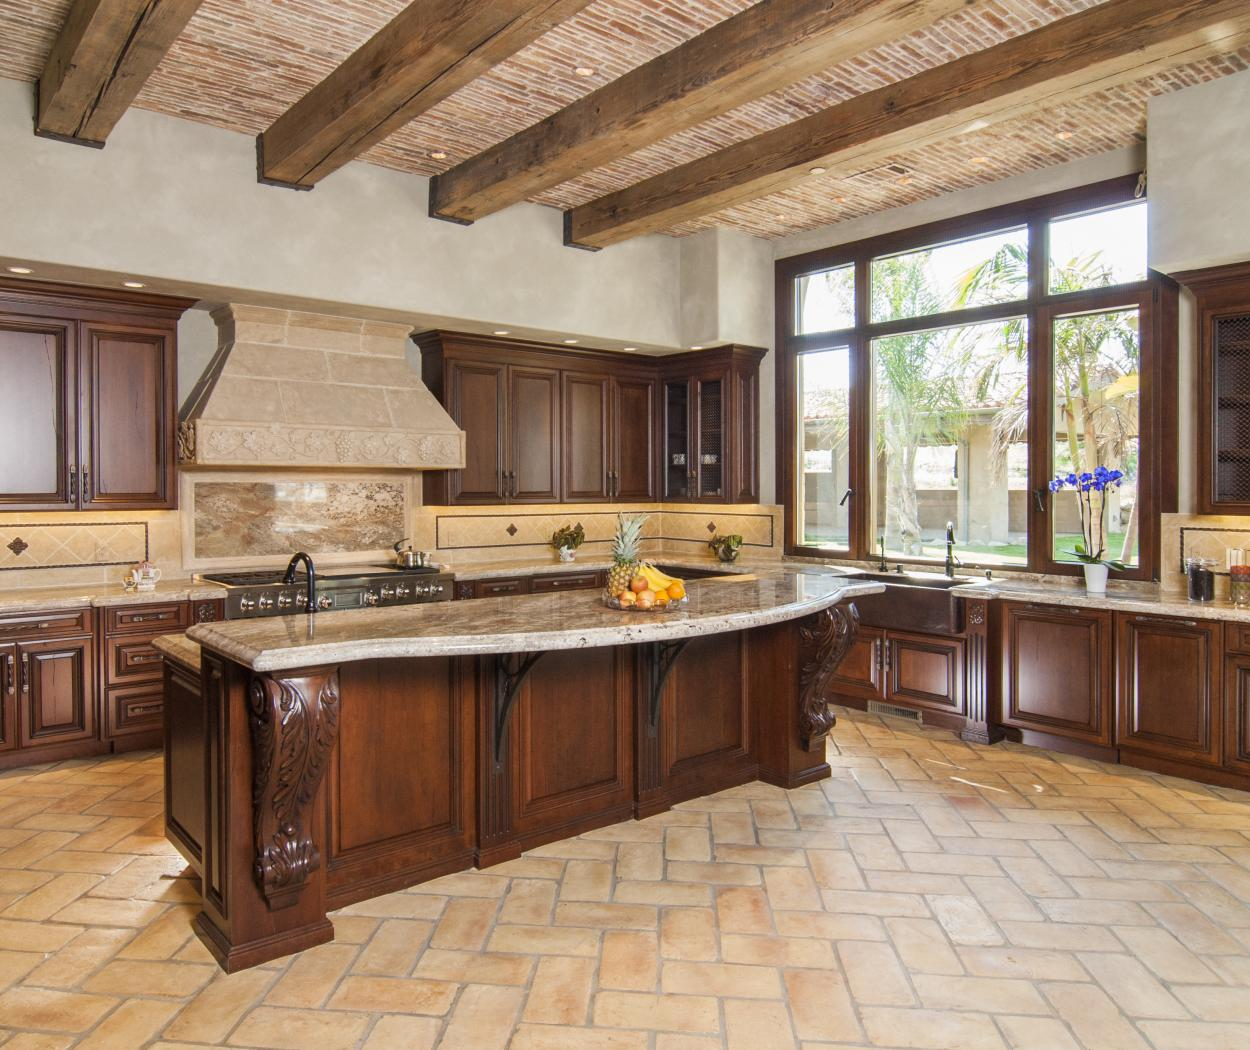 Traditional Kitchen with a Beautiful Cast Stone Hood, Decorative Corbels, Wire Mesh Doors and Stainless Steel Appliances